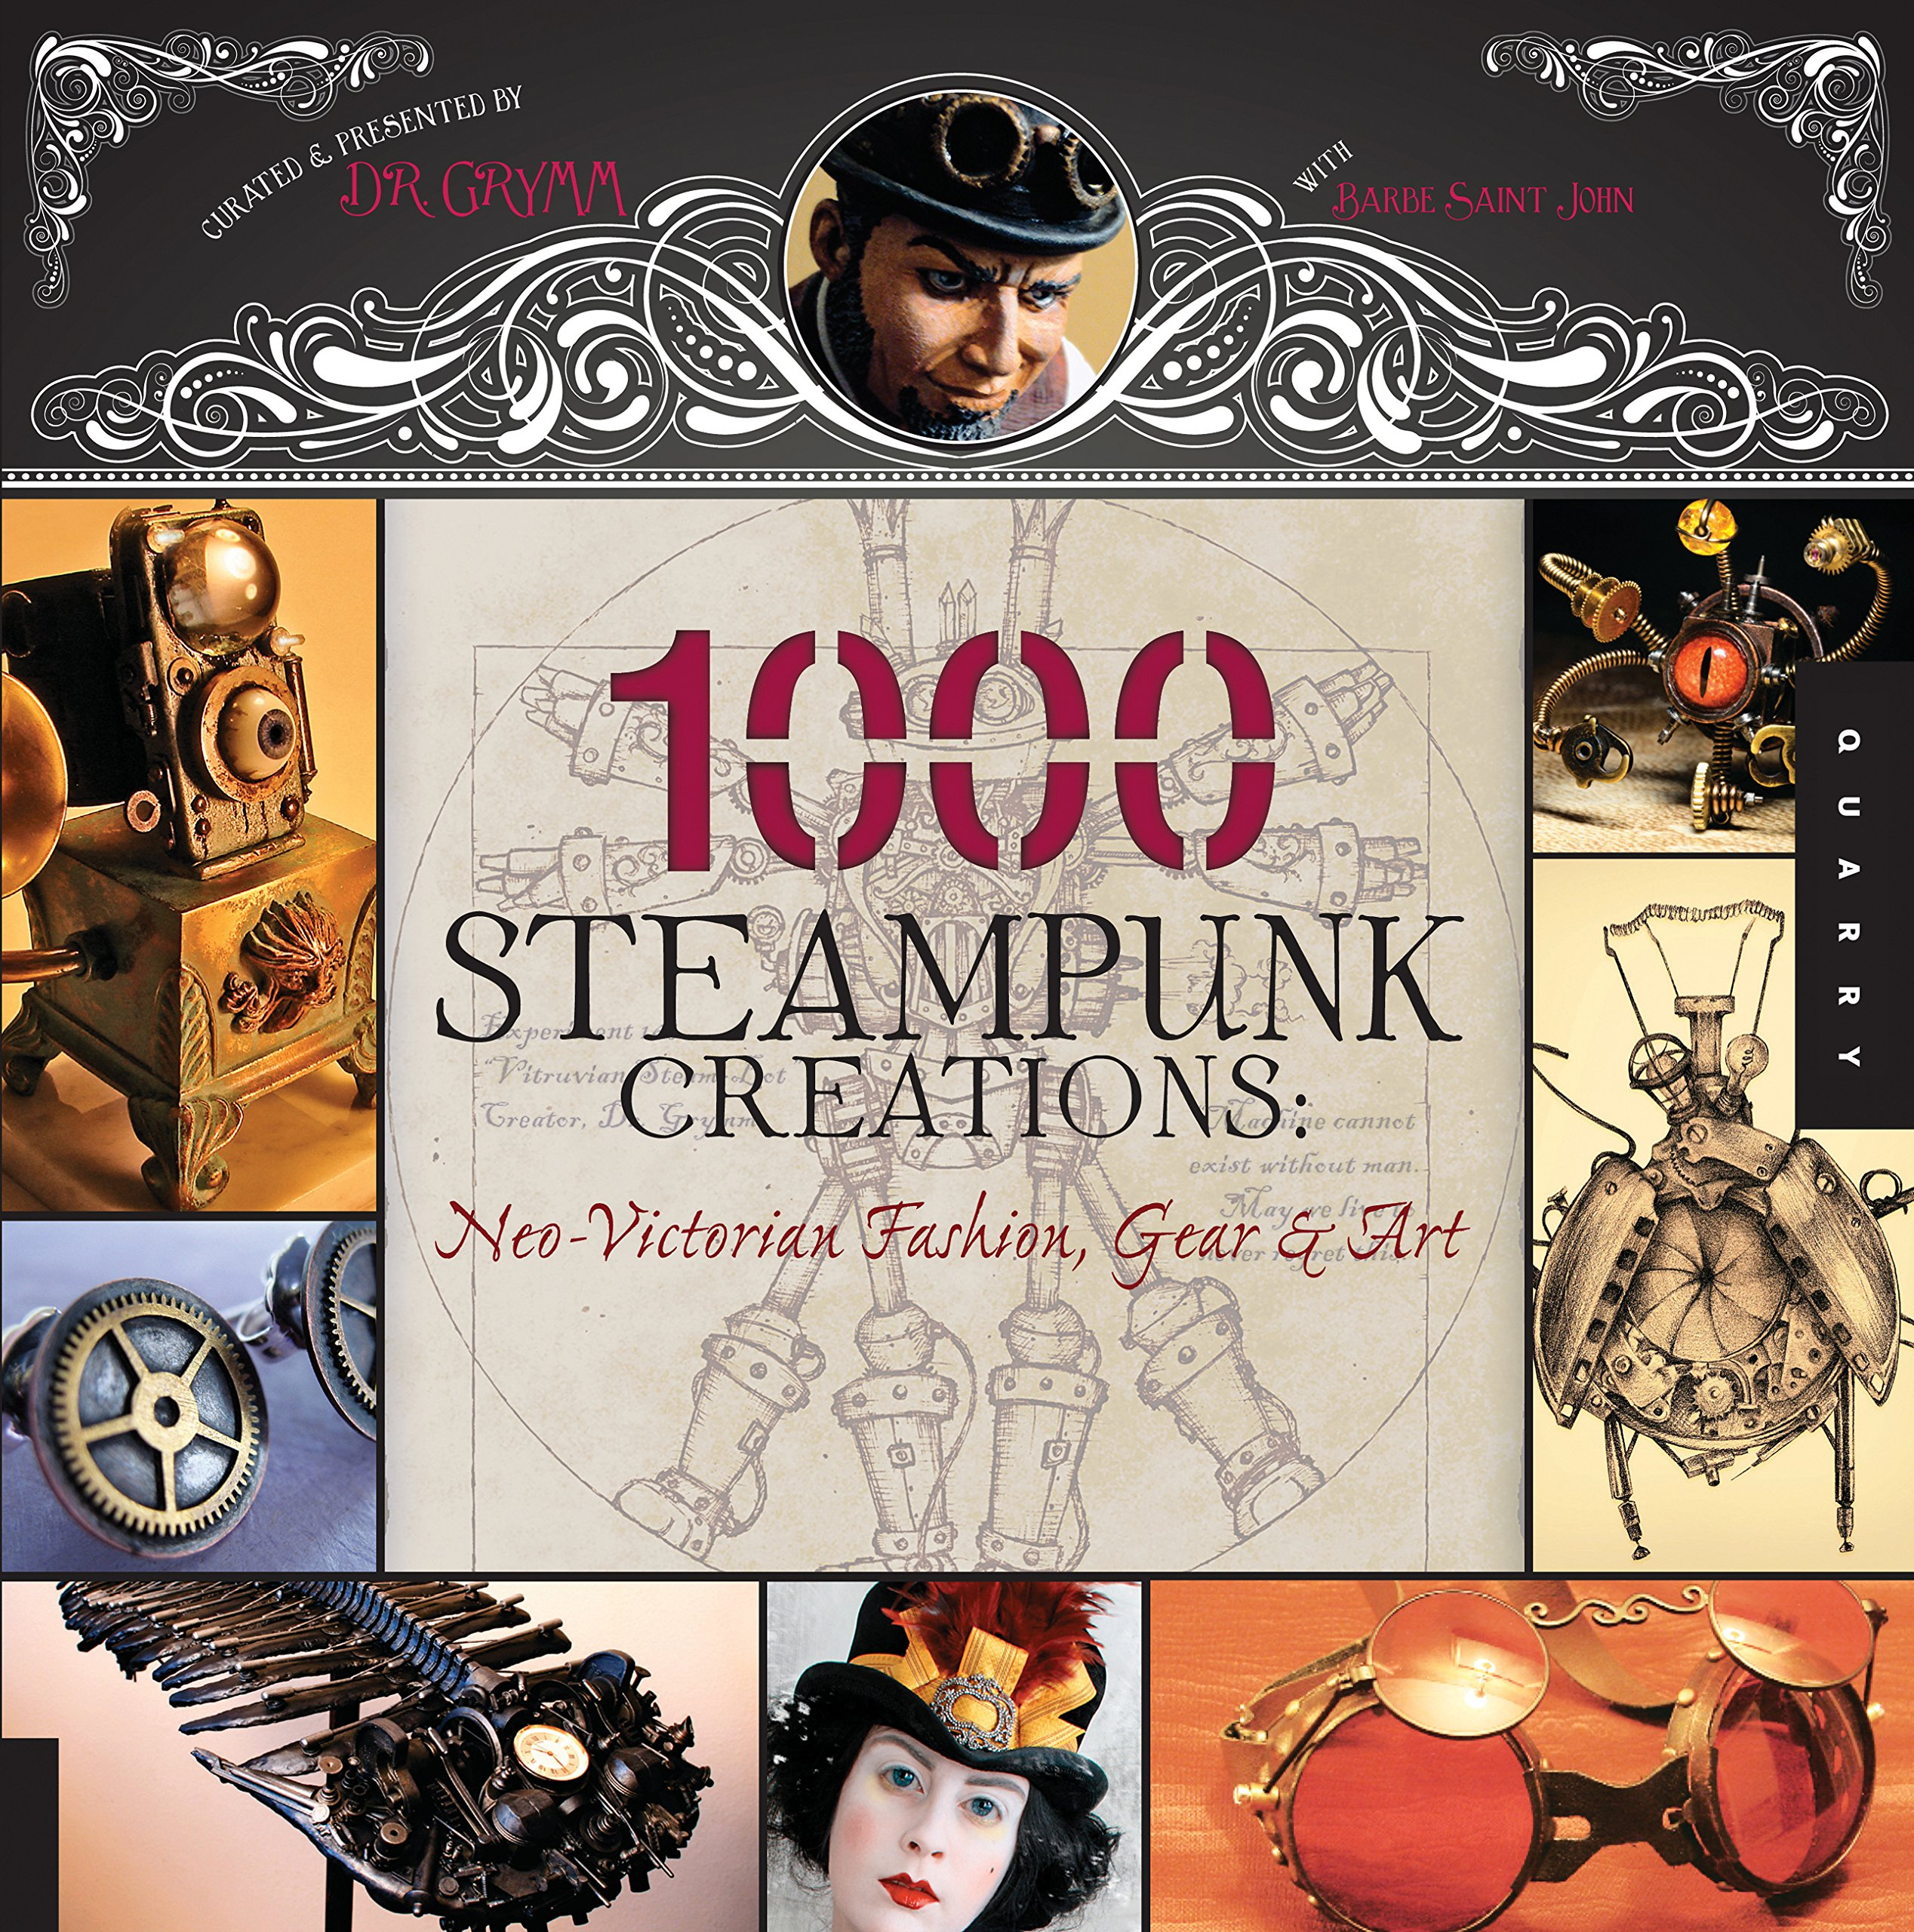 1, 000 Steampunk Creations: Neo-Victorian Fashion, Gear, and Art (1000  Series): Dr. Grymm, Barbe Saint John: 9781592536917: Amazon.com: Books